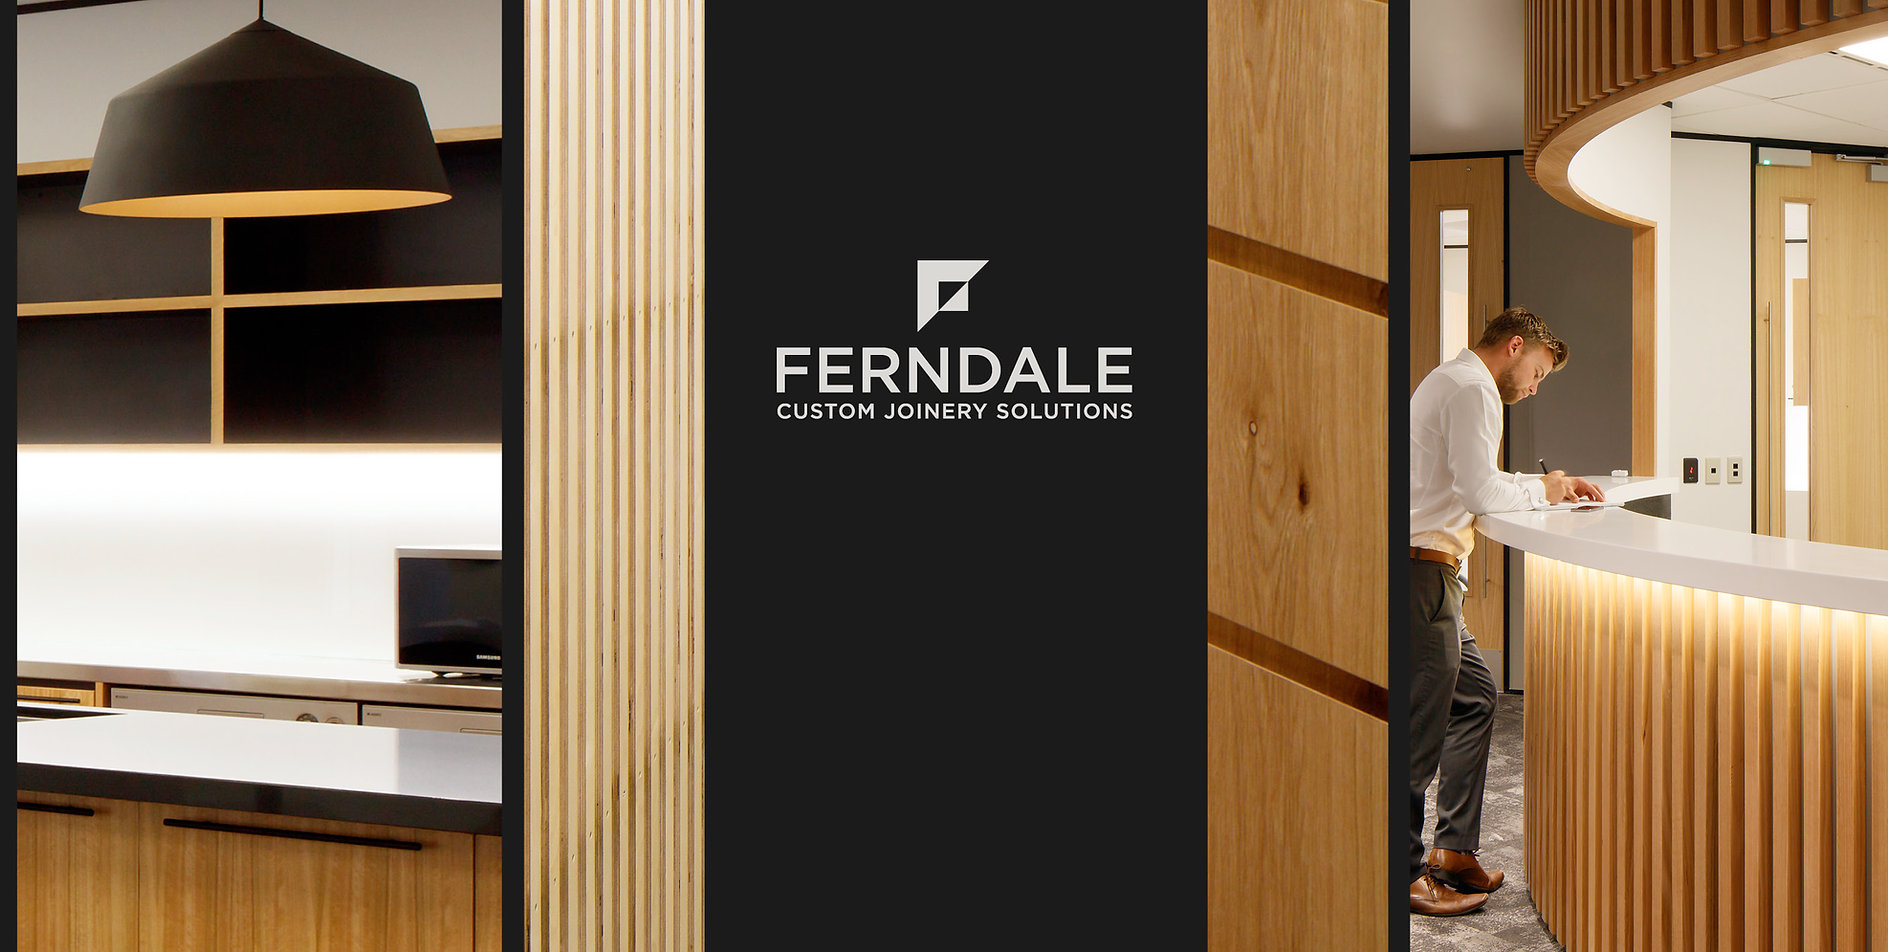 ferndale web home page image.jpg